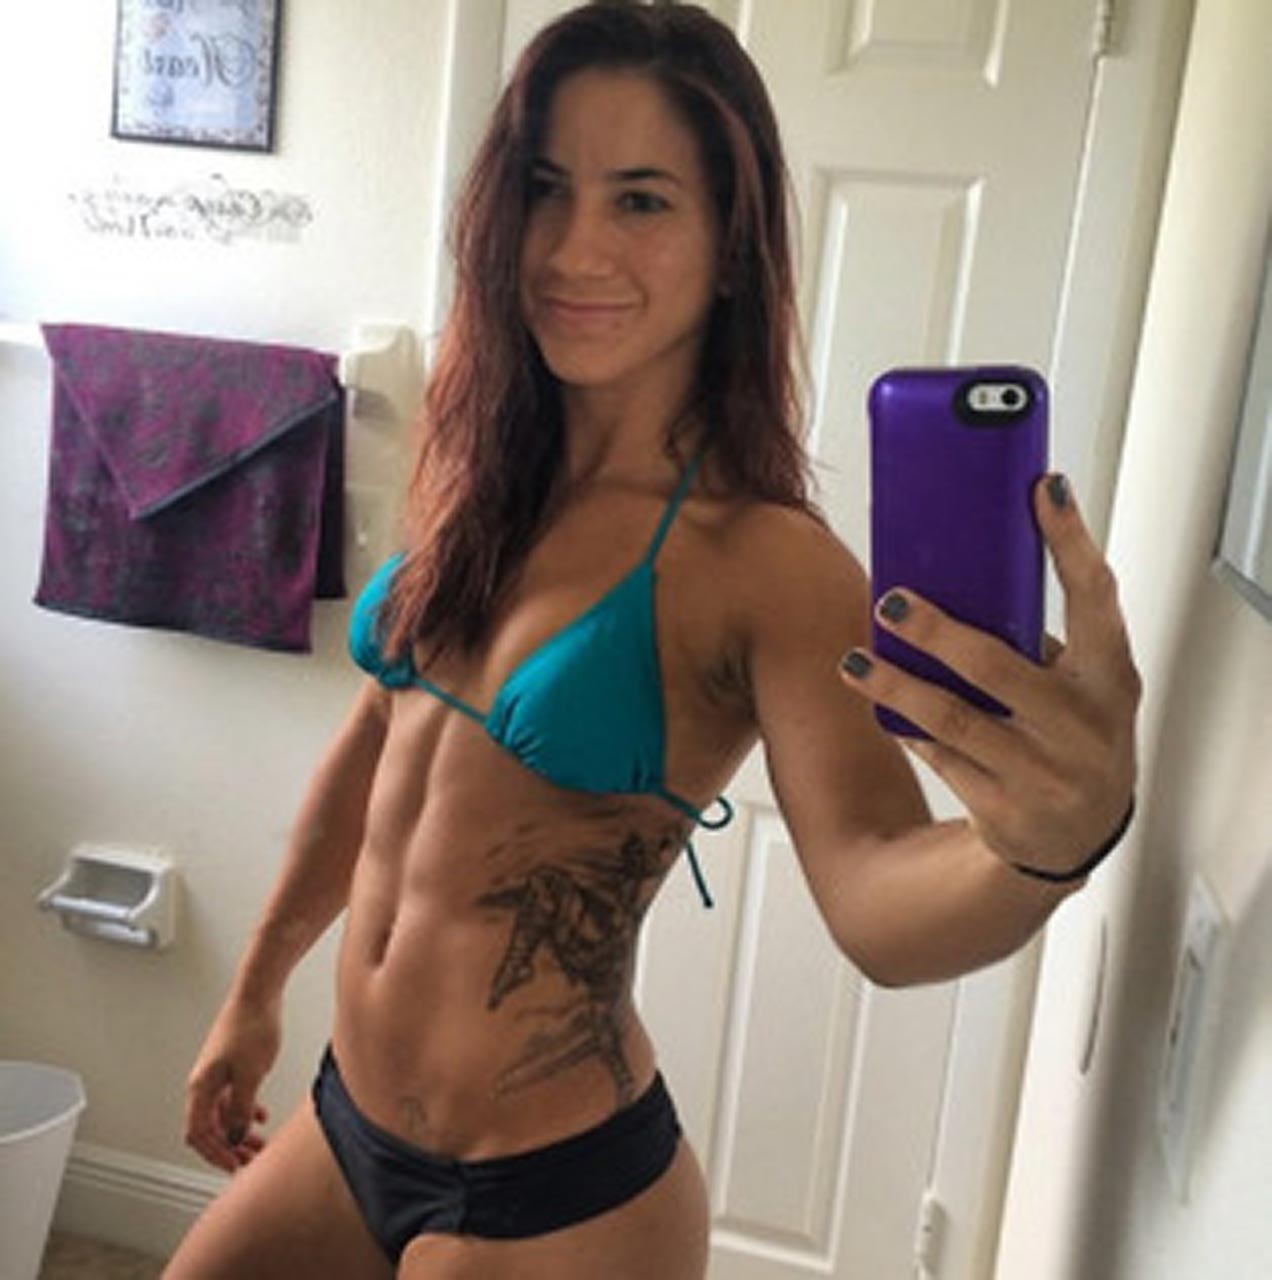 Angela Magana Uncensored ufc fighter tecia torres leaked nude photos - scandal planet